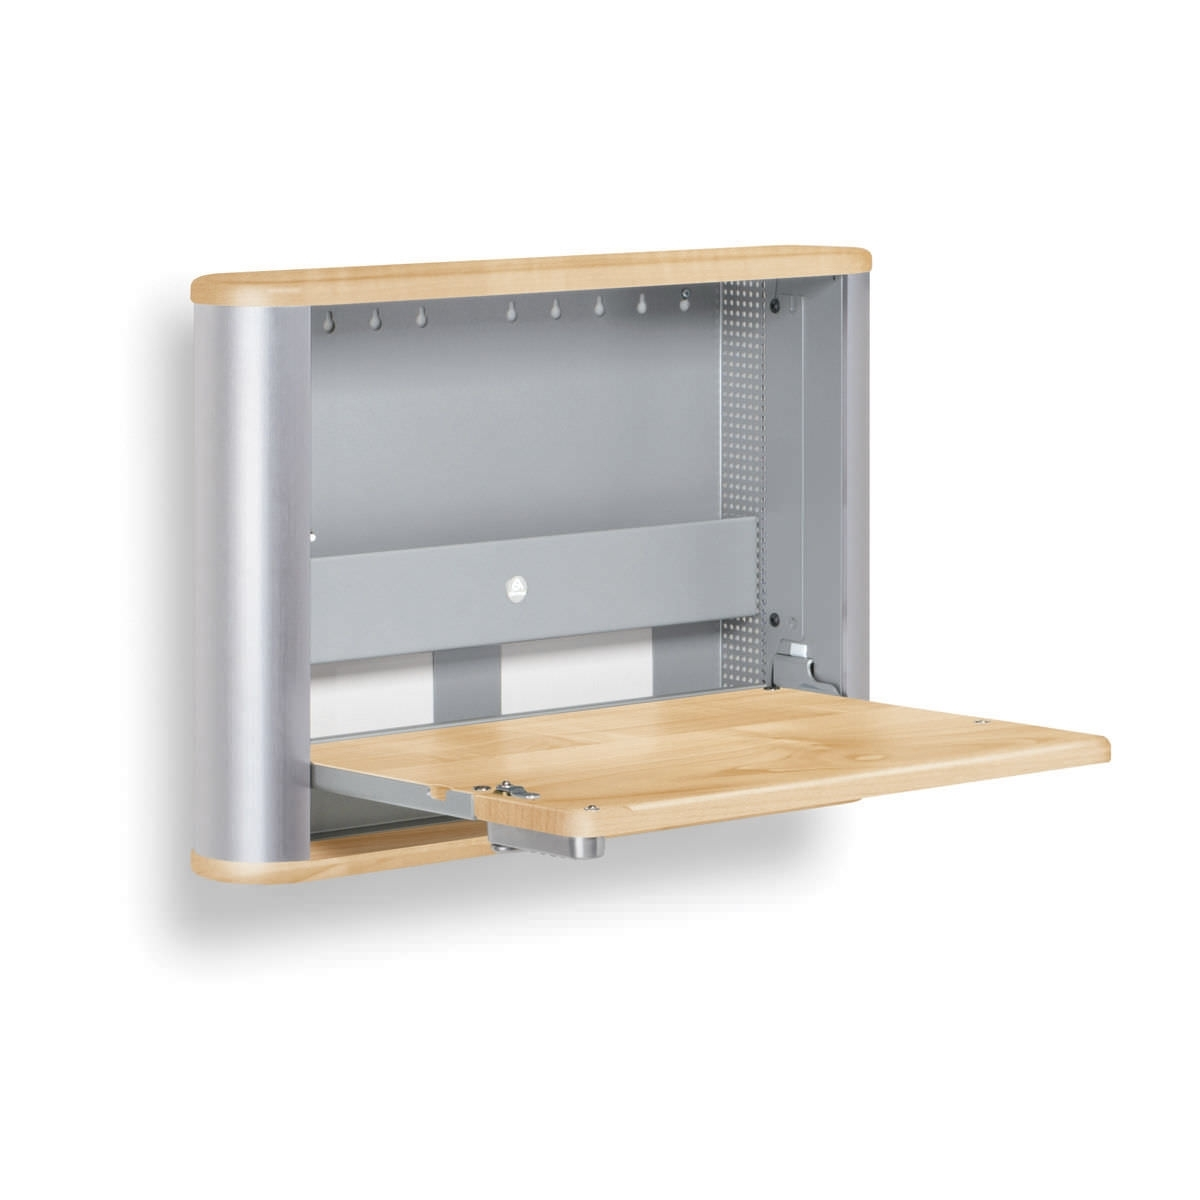 Most Popular Modern Minimalist Wall Mounted Foldable Desk Design With Wooden Intended For Wall Computer Desks (View 10 of 20)